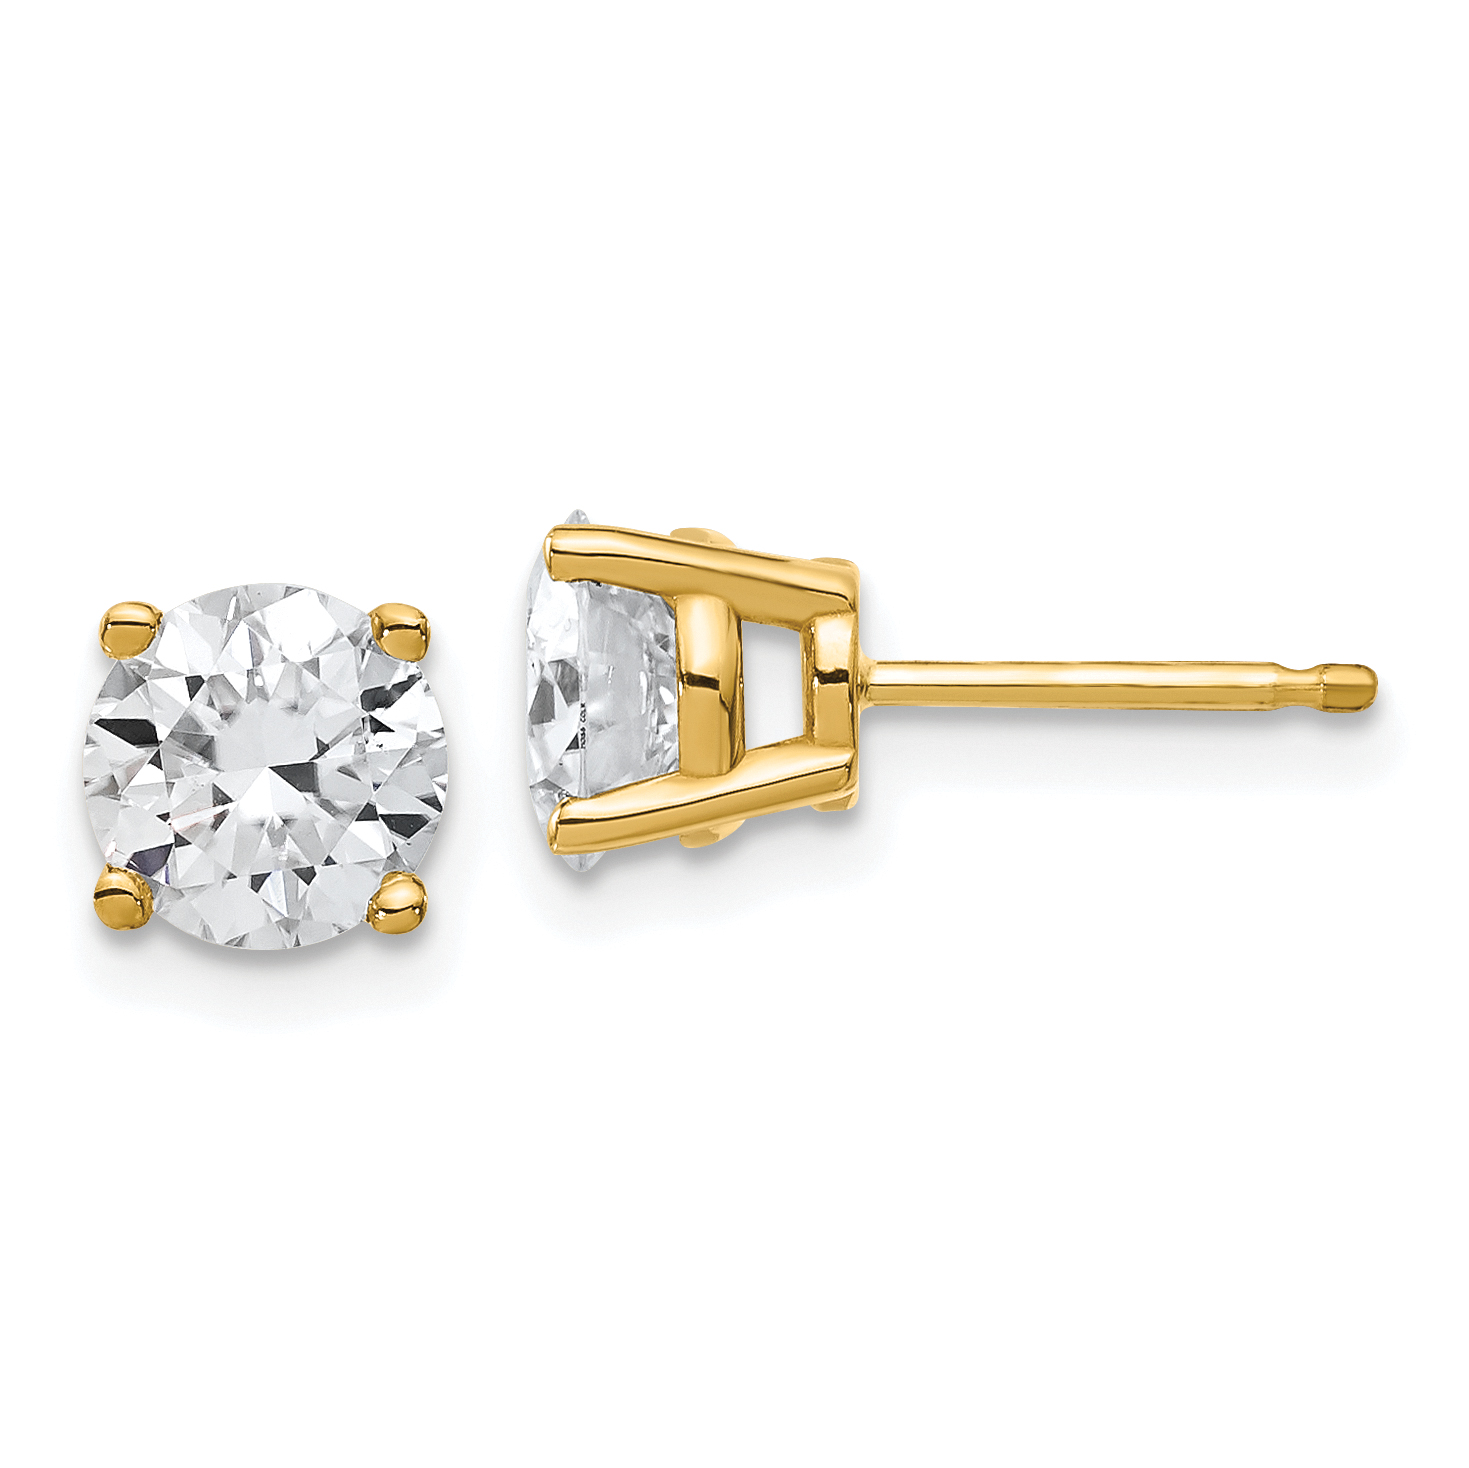 gold goldsq products silver e starlight tenzabelle stud earrings long moissanite drops